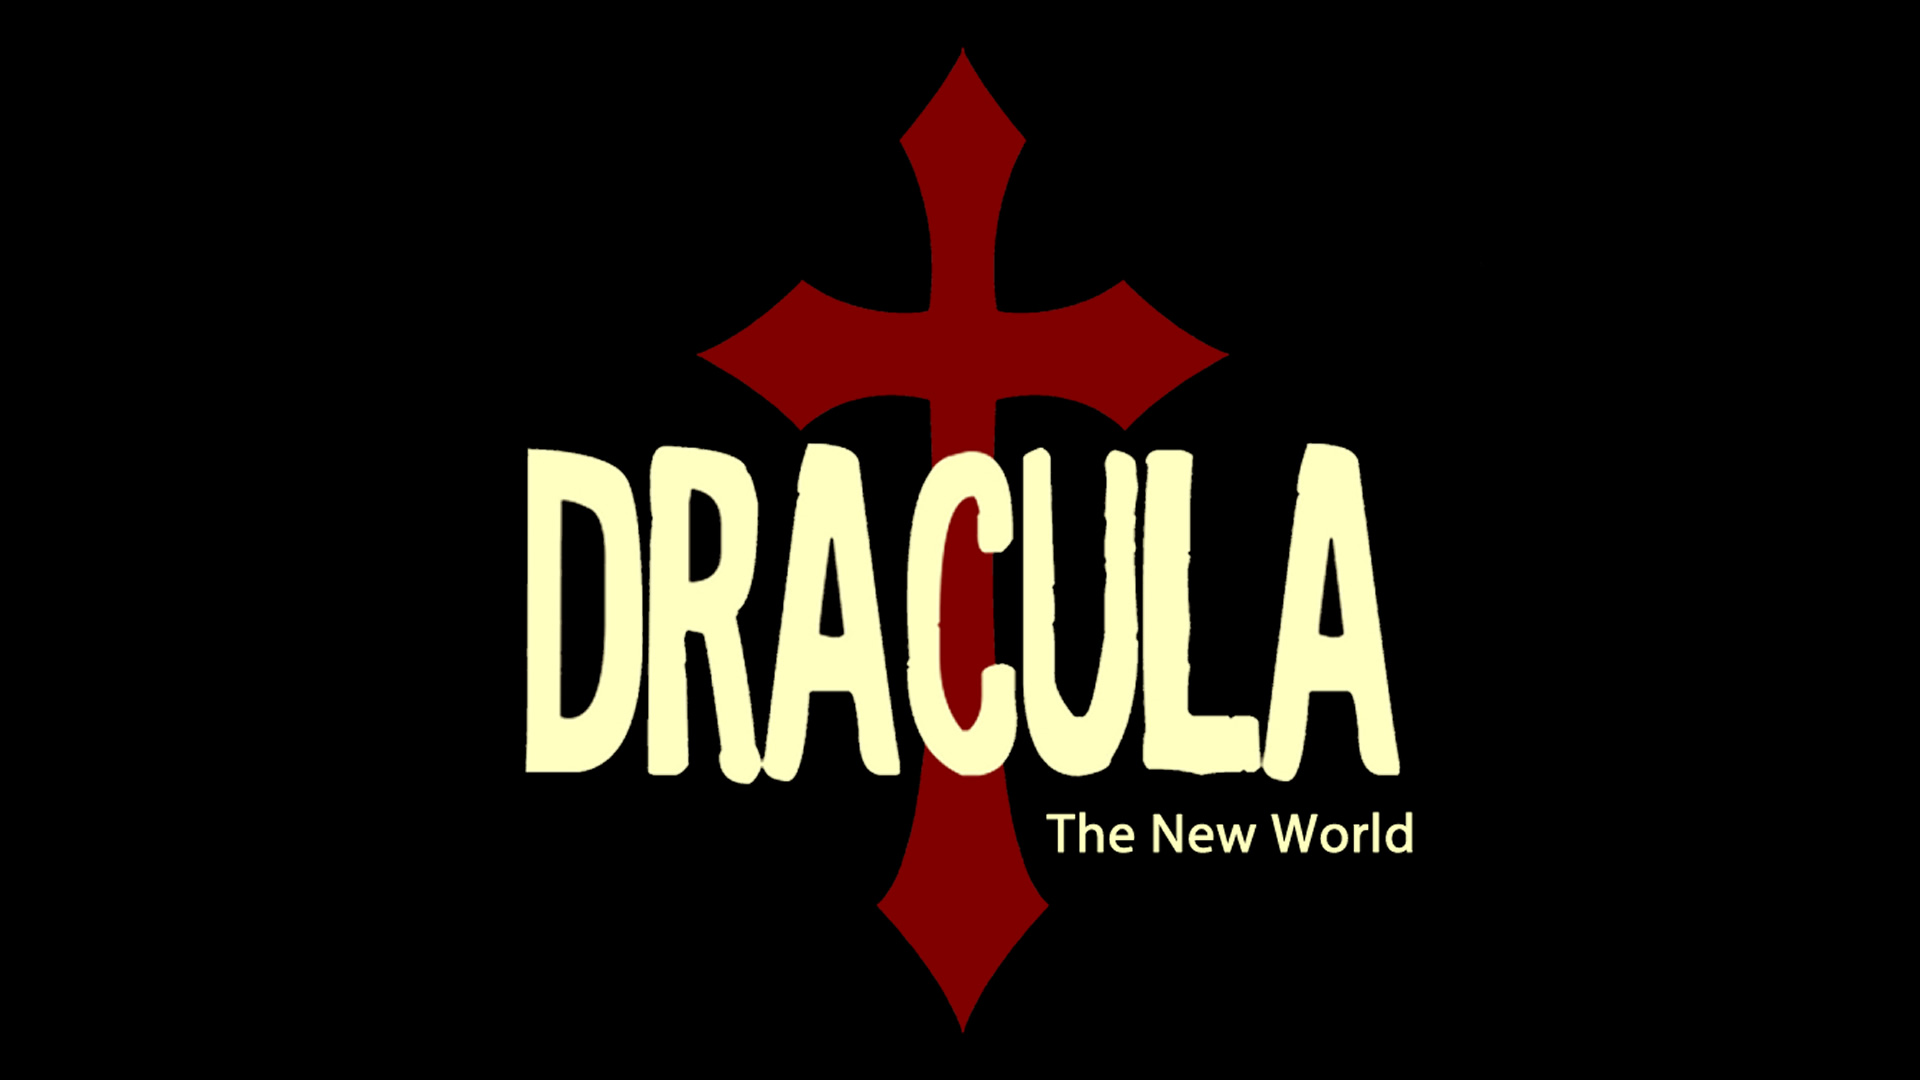 Dracula: The New World 2019 (Oct 28-Nov 1)